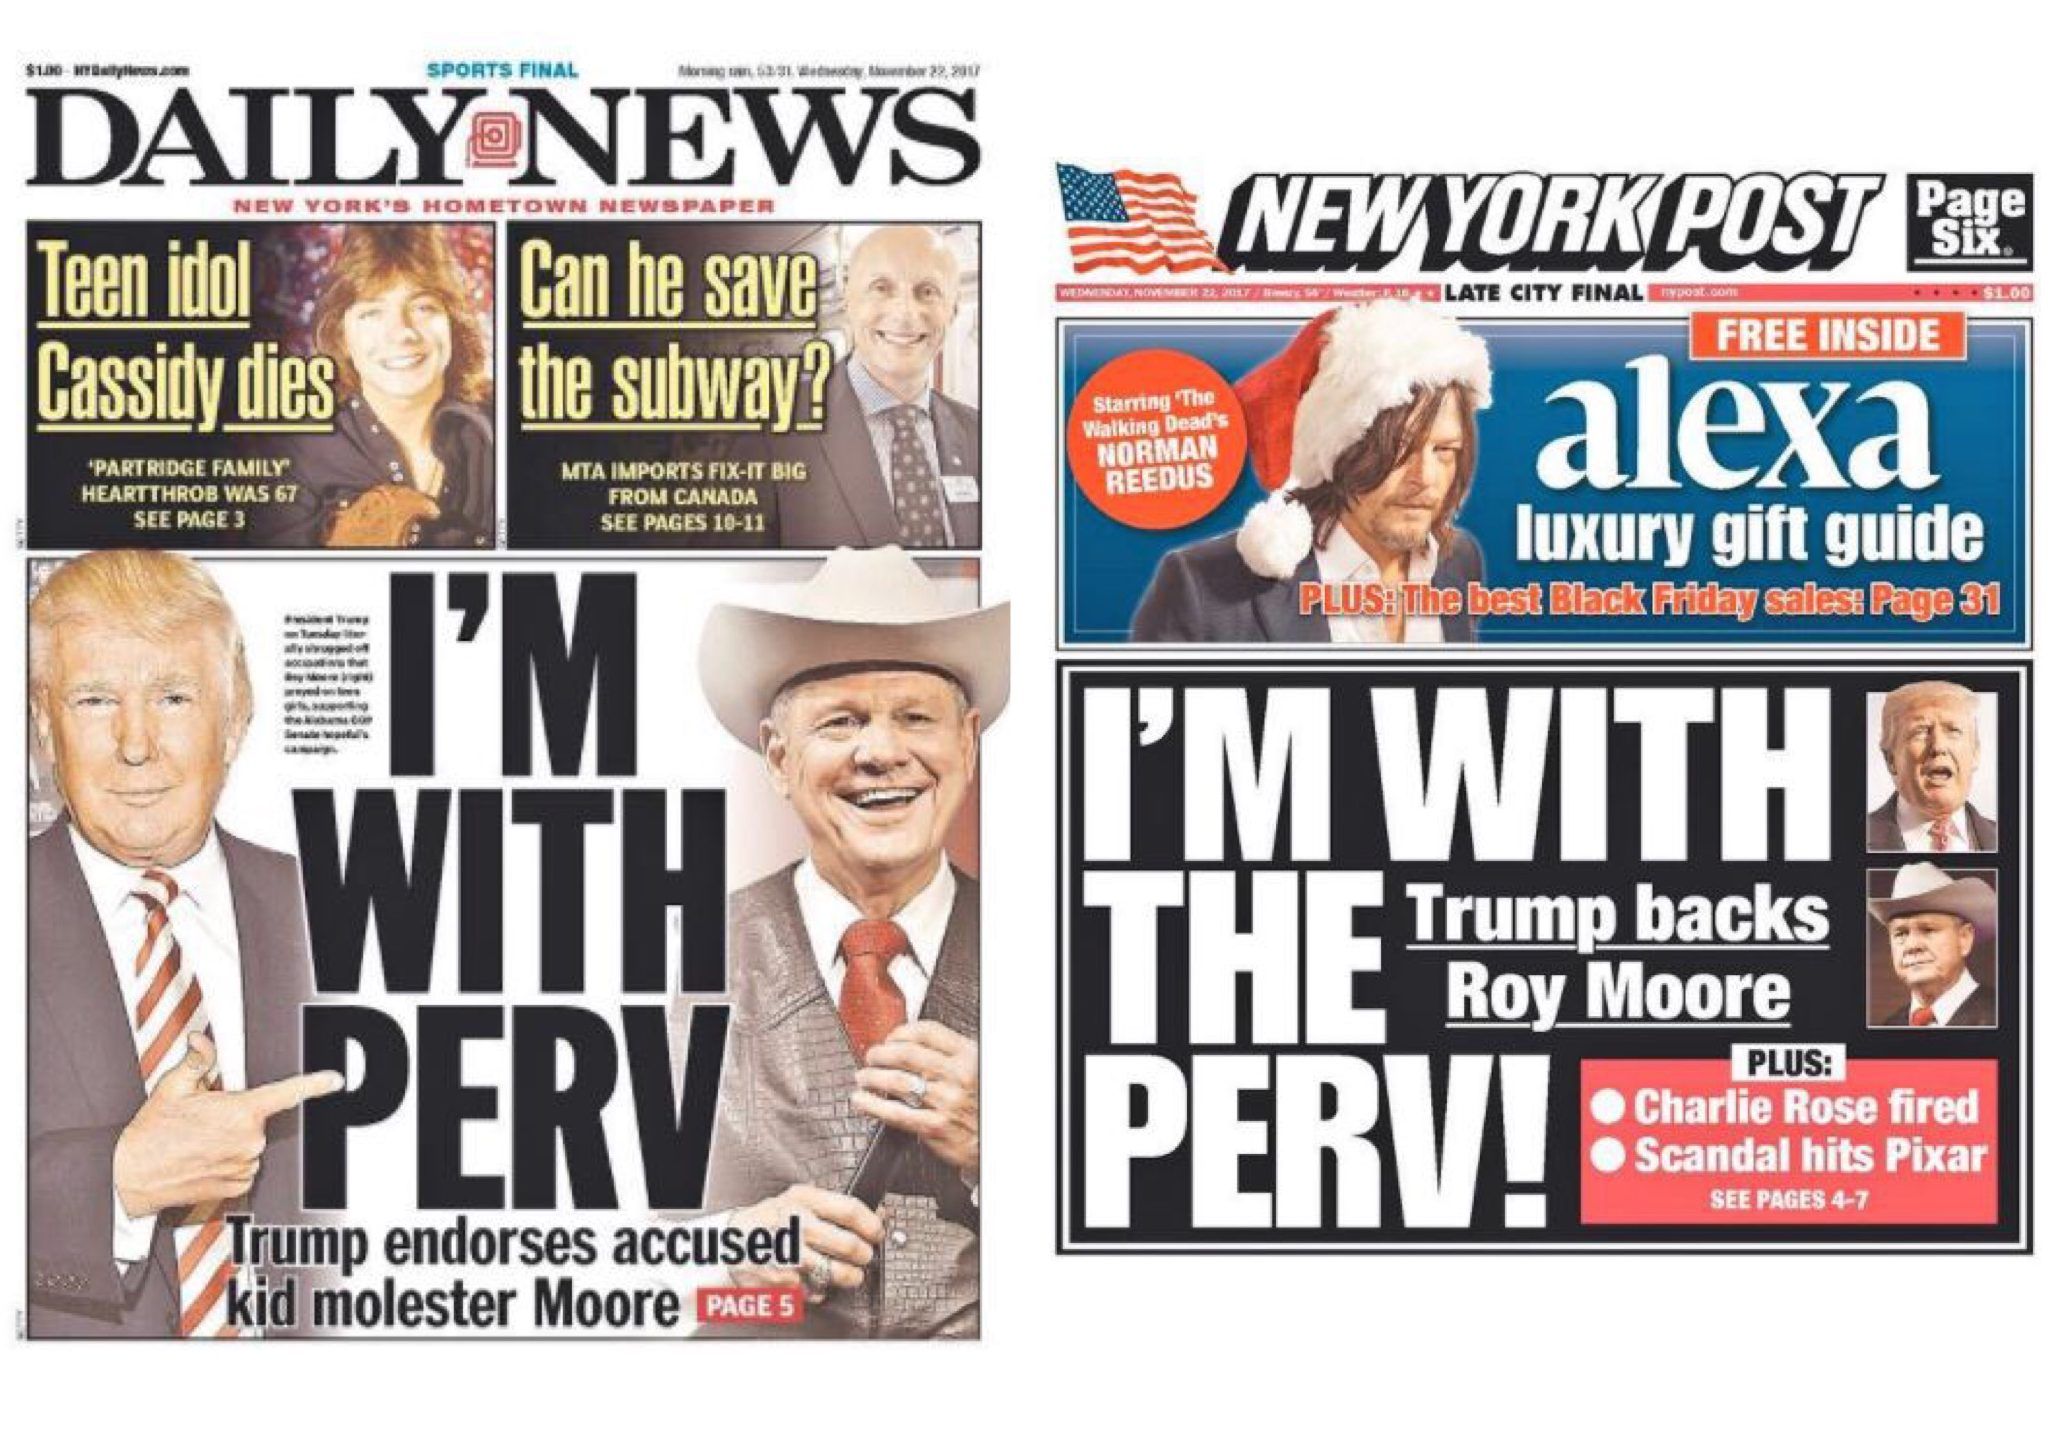 NY Post and NY Daily News Covers Match ...